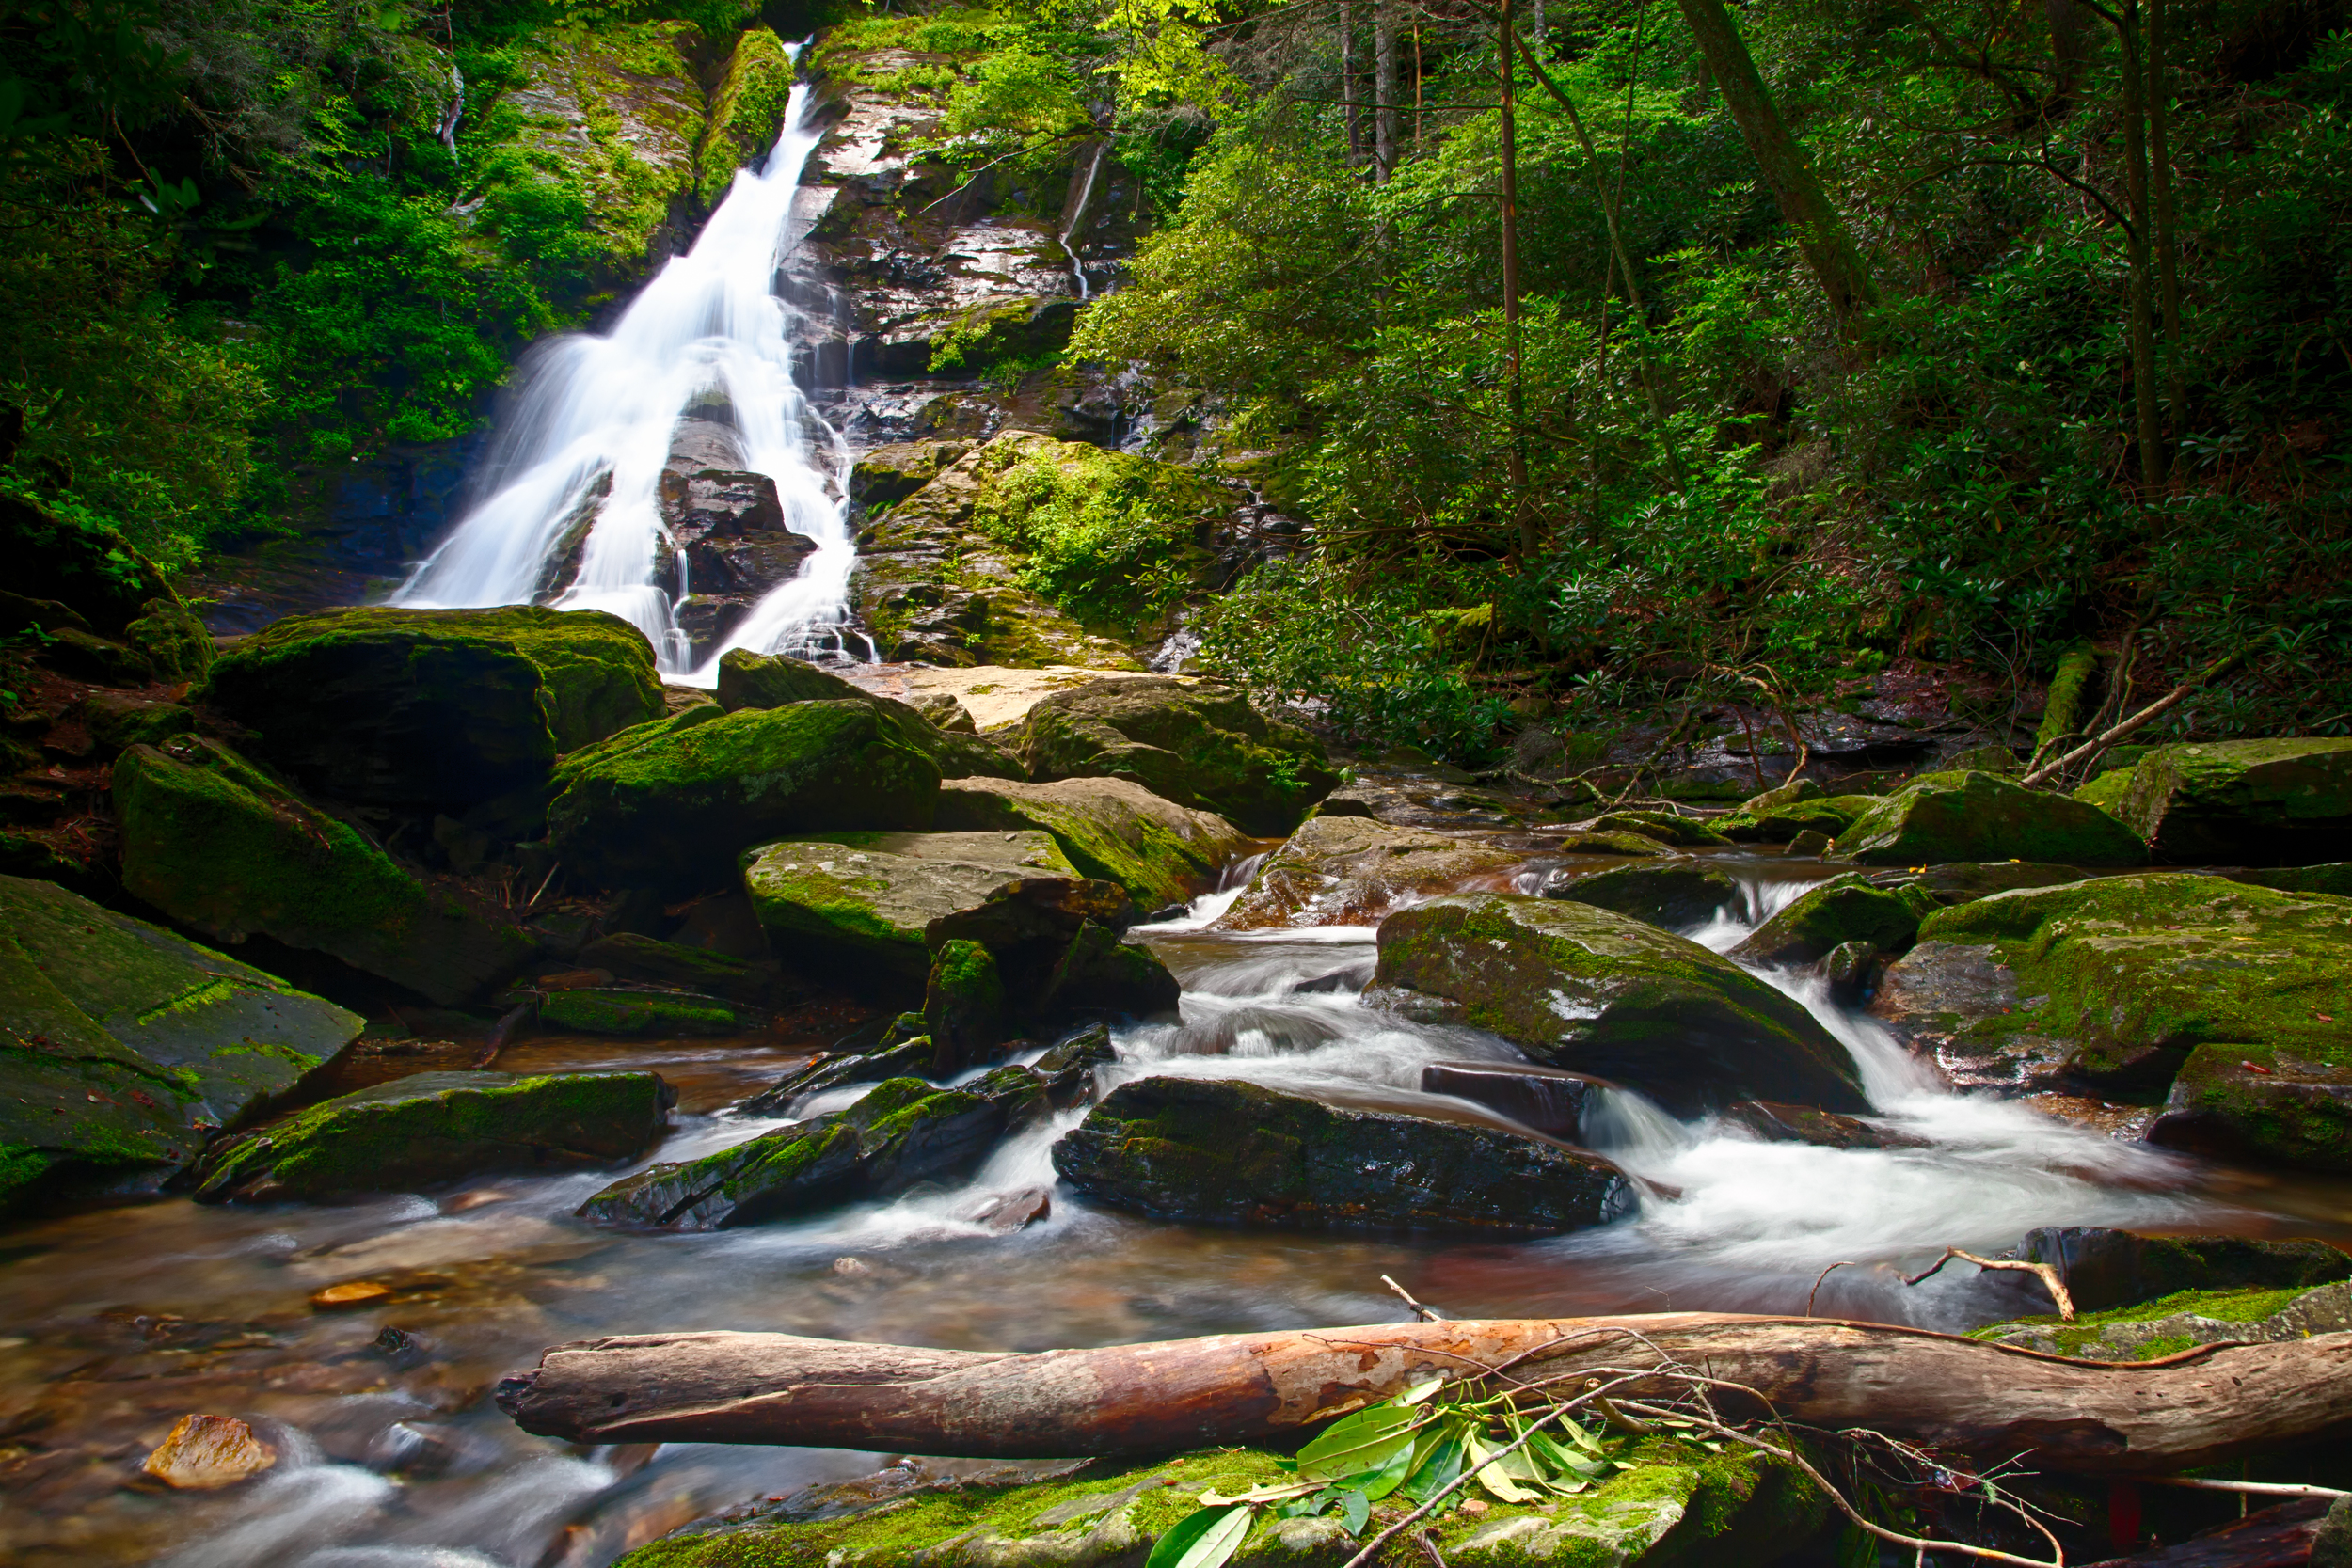 20120723high_shoals_falls_0067_HDR.jpg